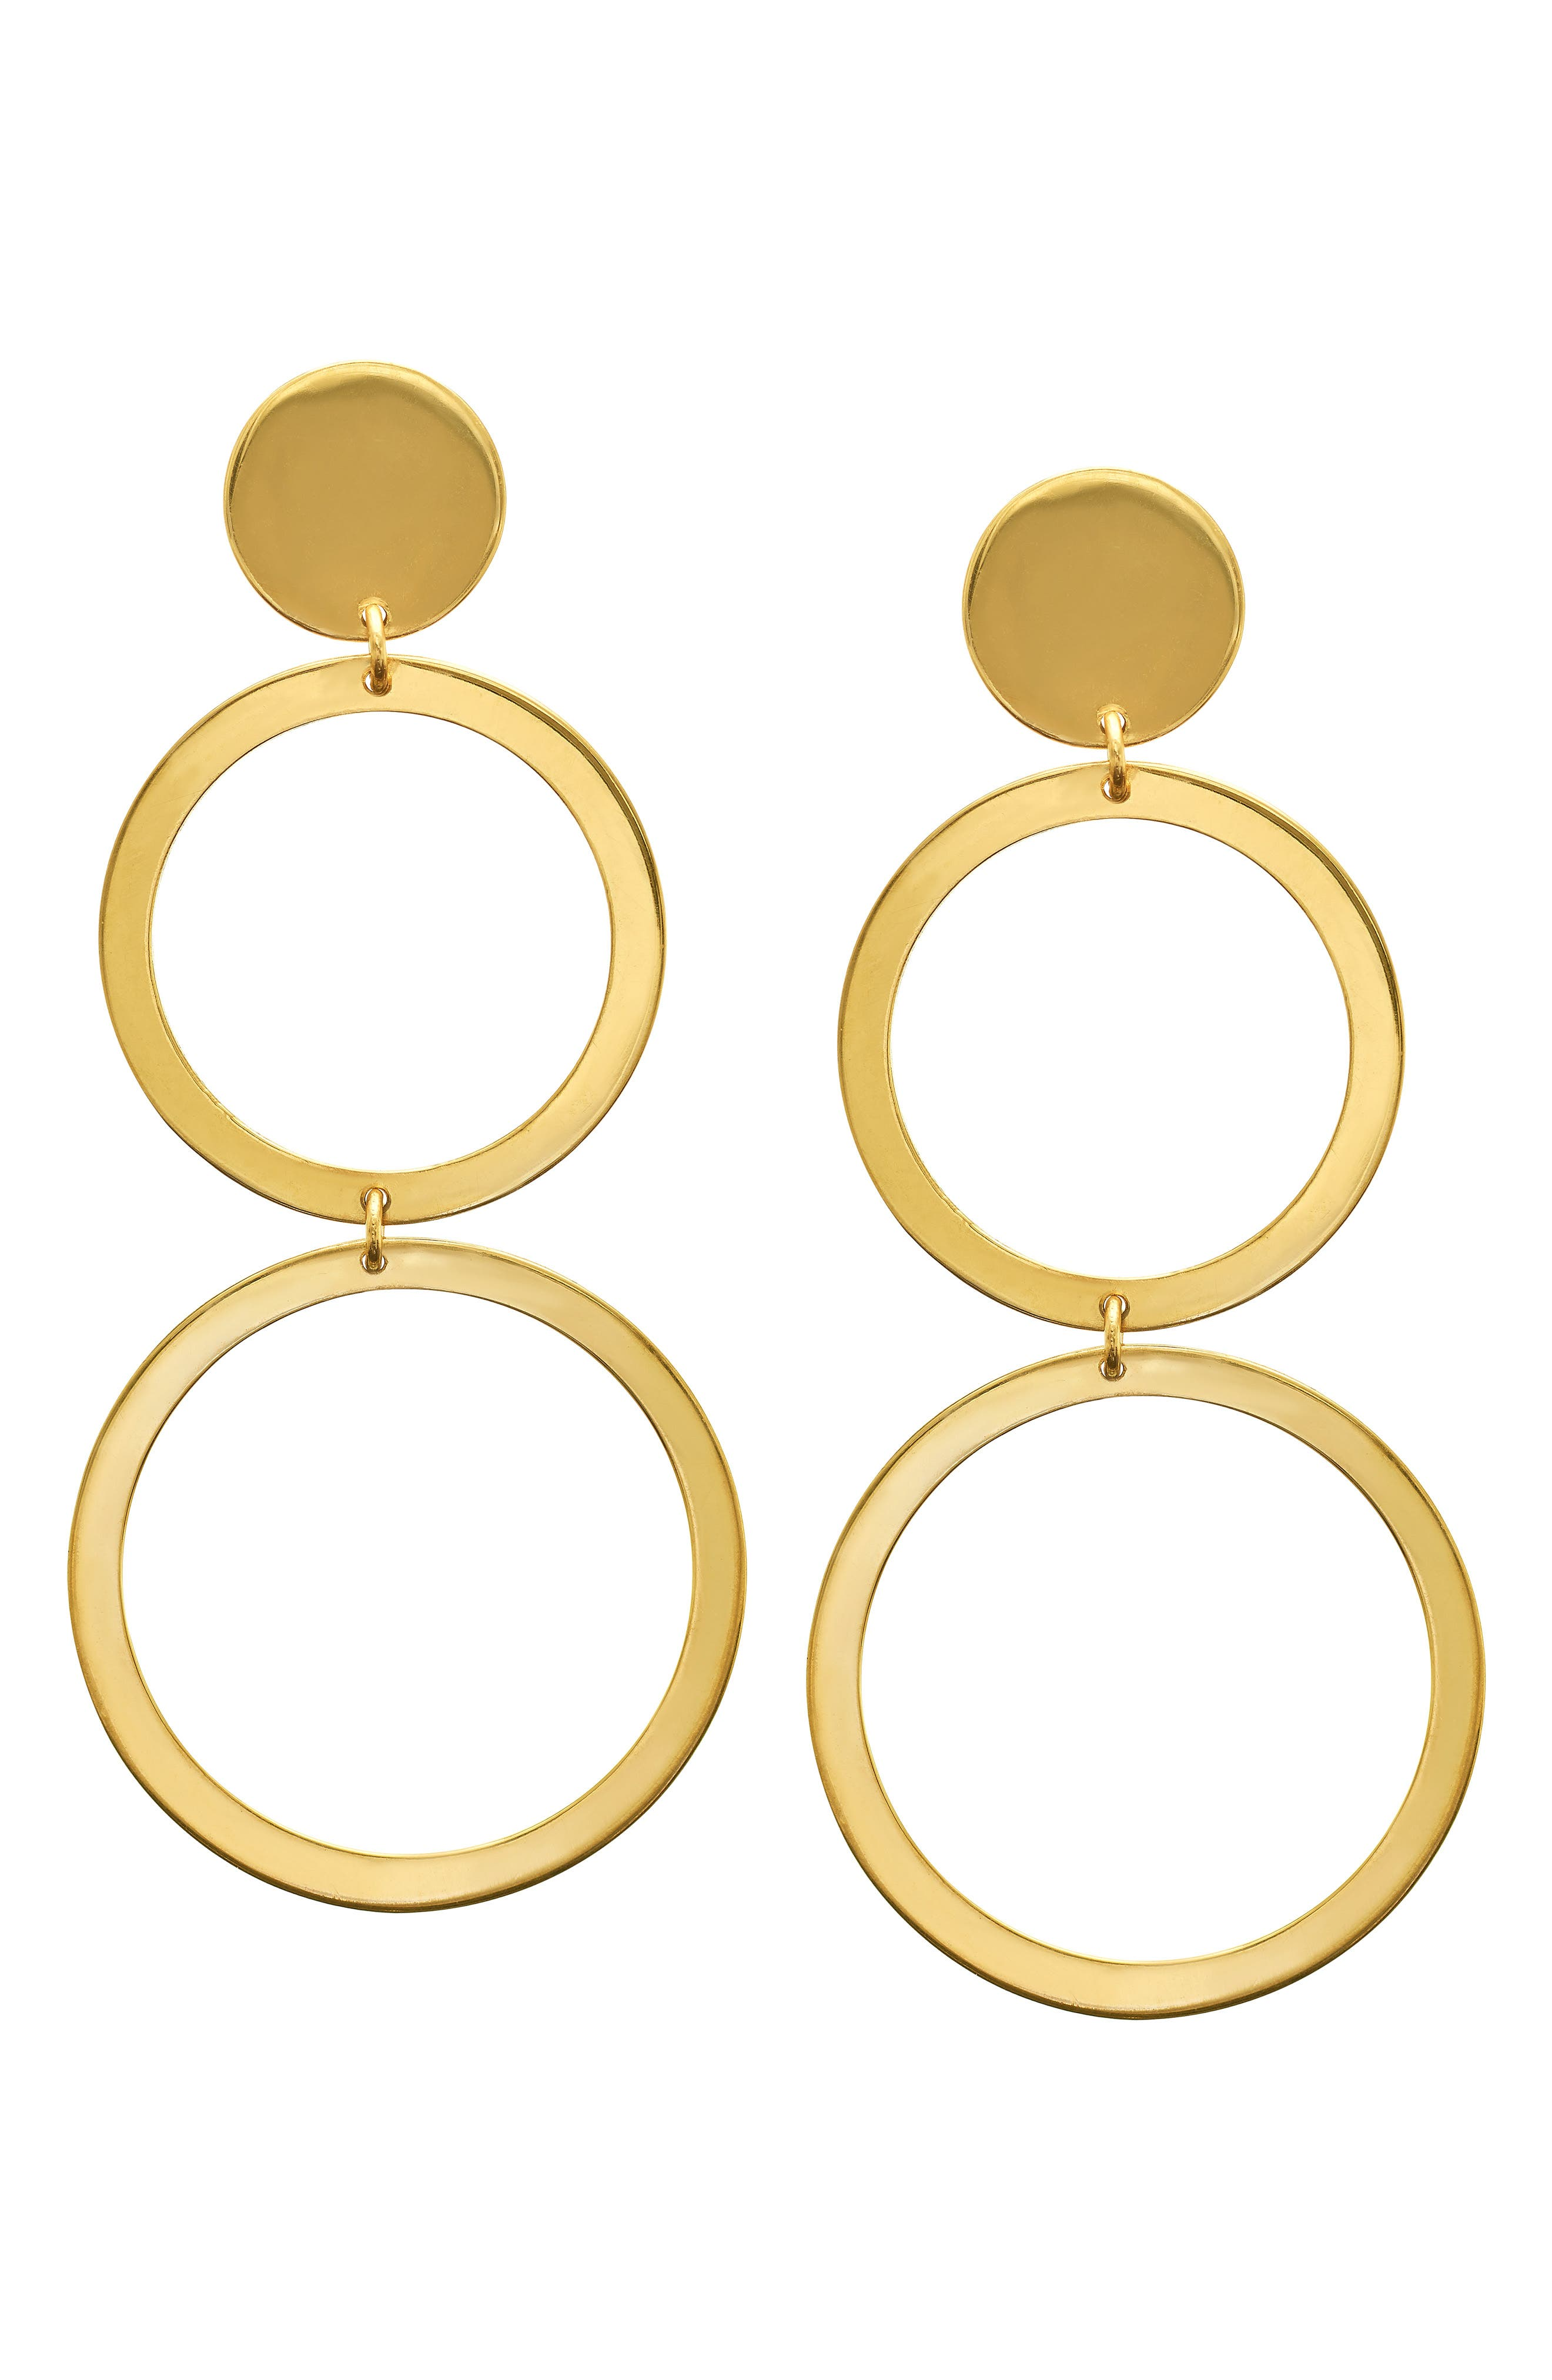 Double Drop Earrings,                         Main,                         color, YELLOW GOLD